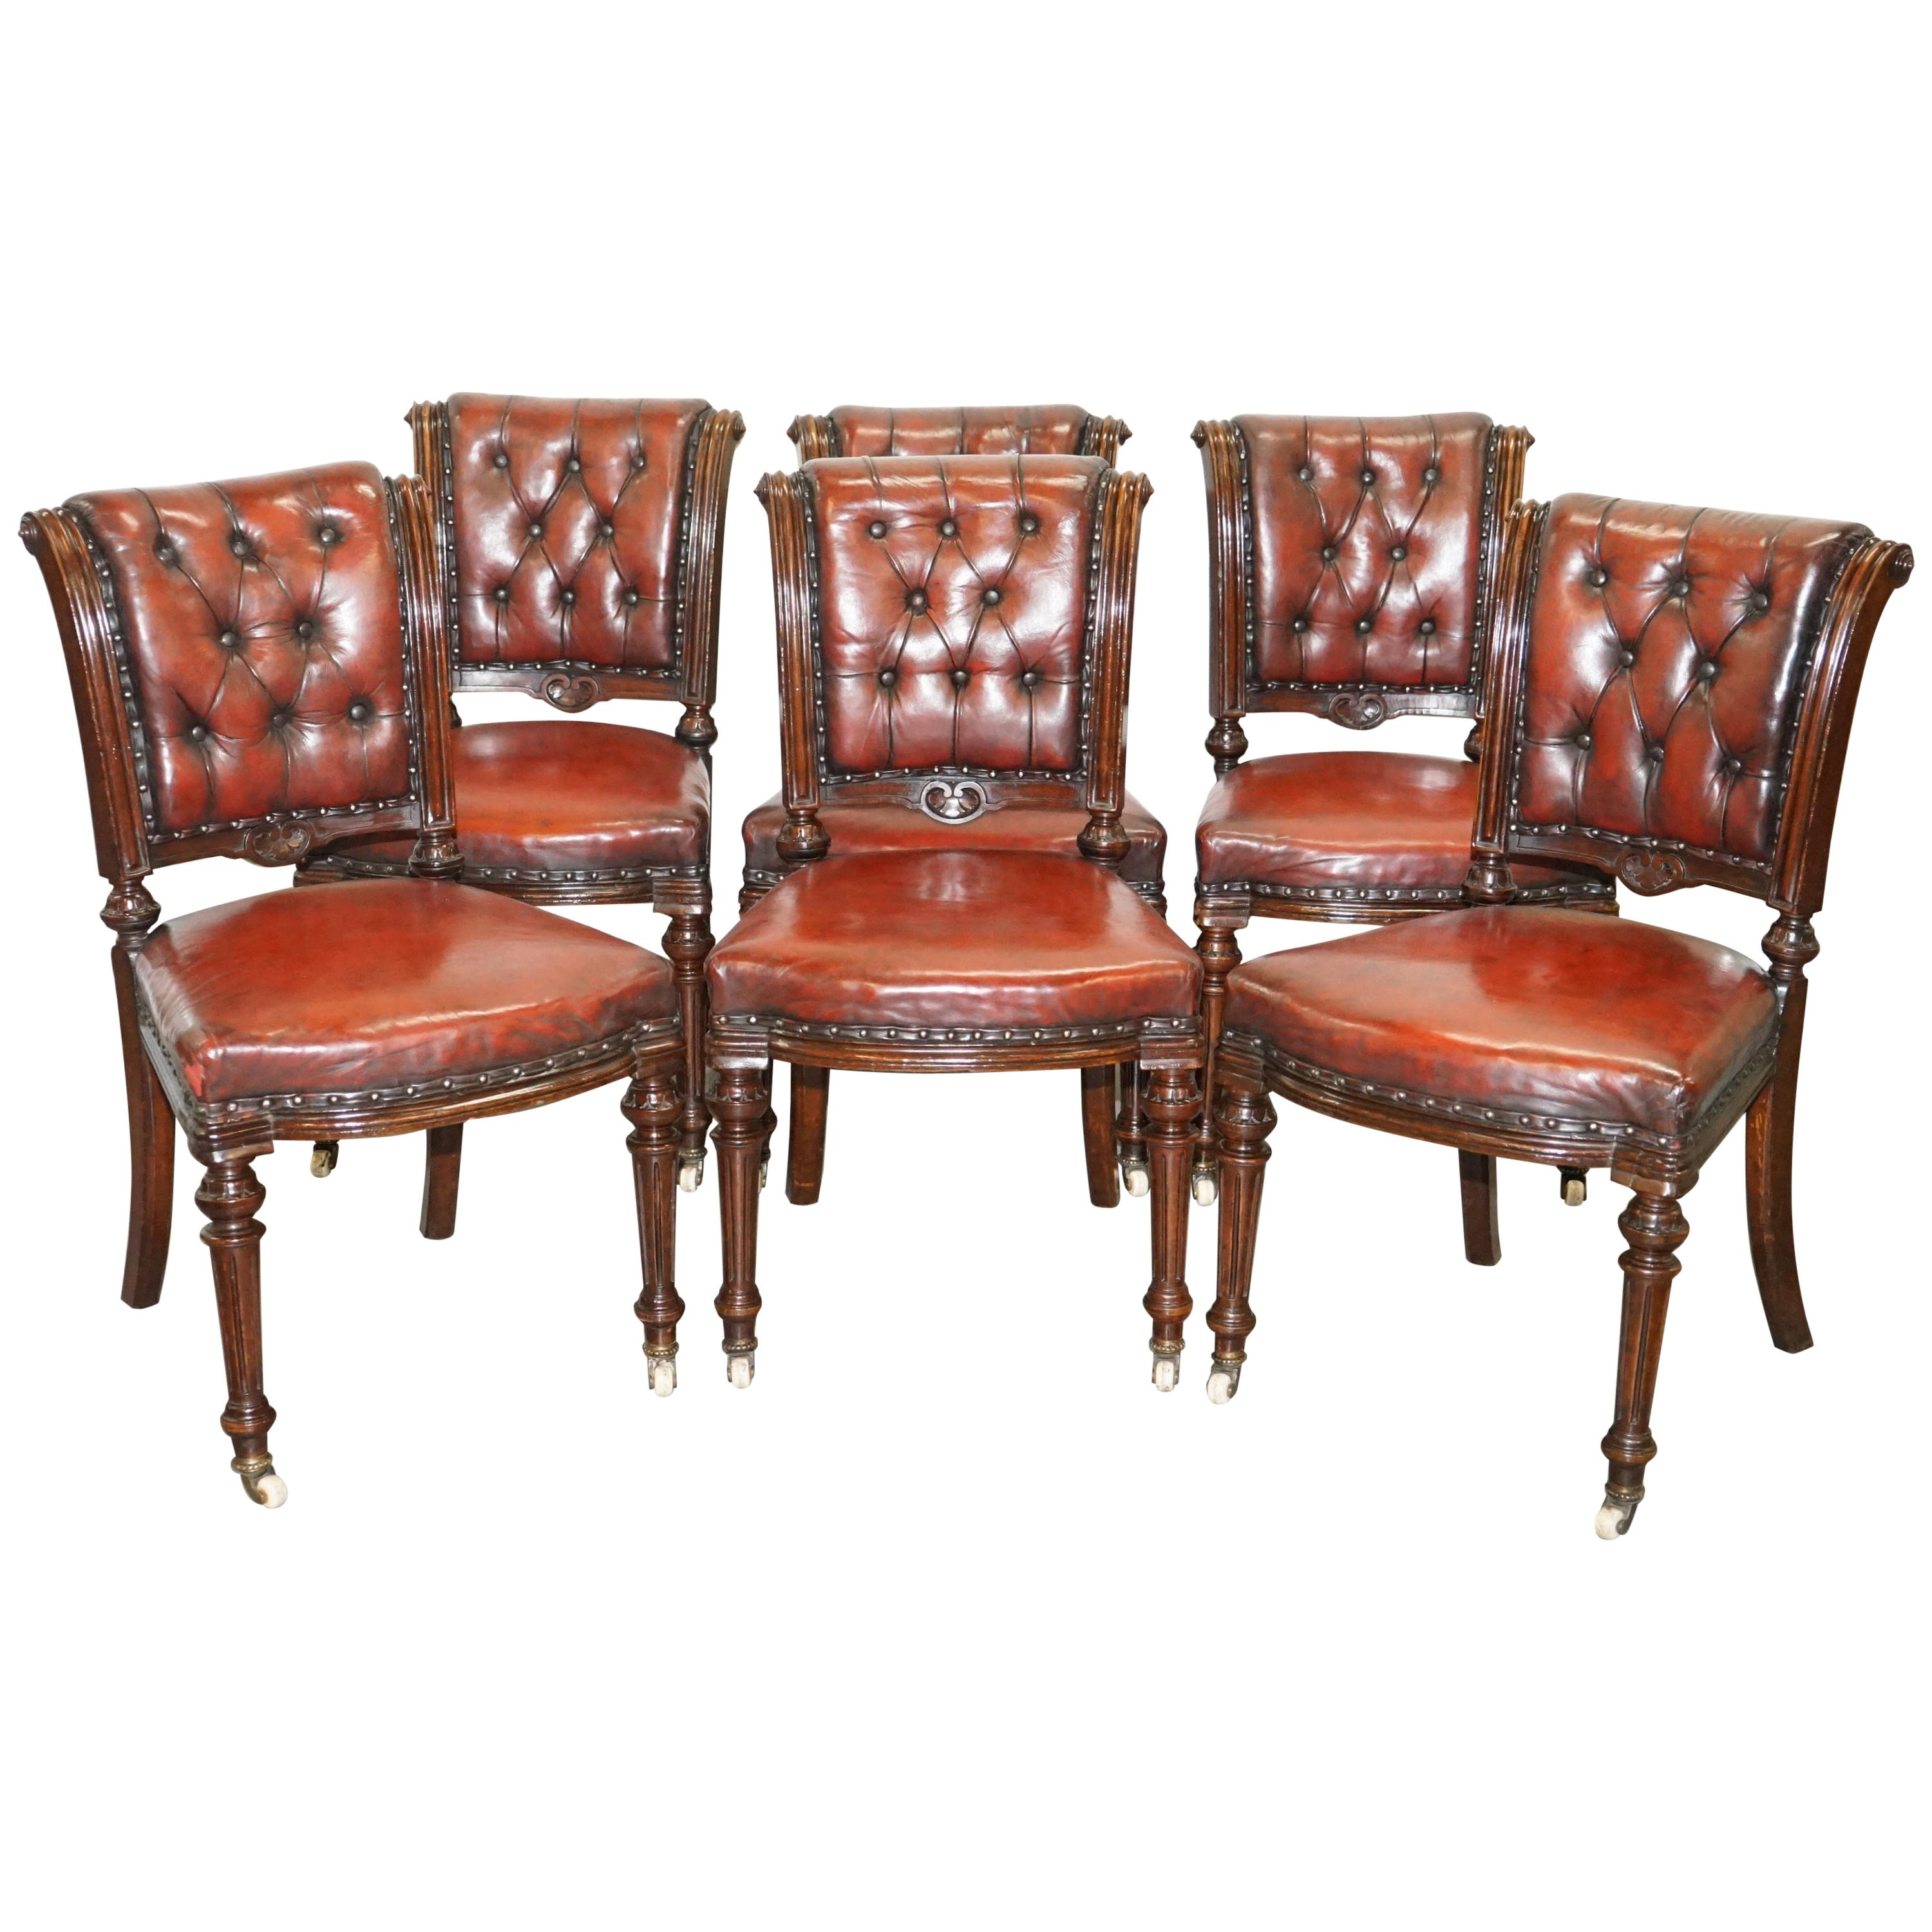 Restored Suite of Six Antque Victorian Chesterfield Brown Leather Dining Chairs